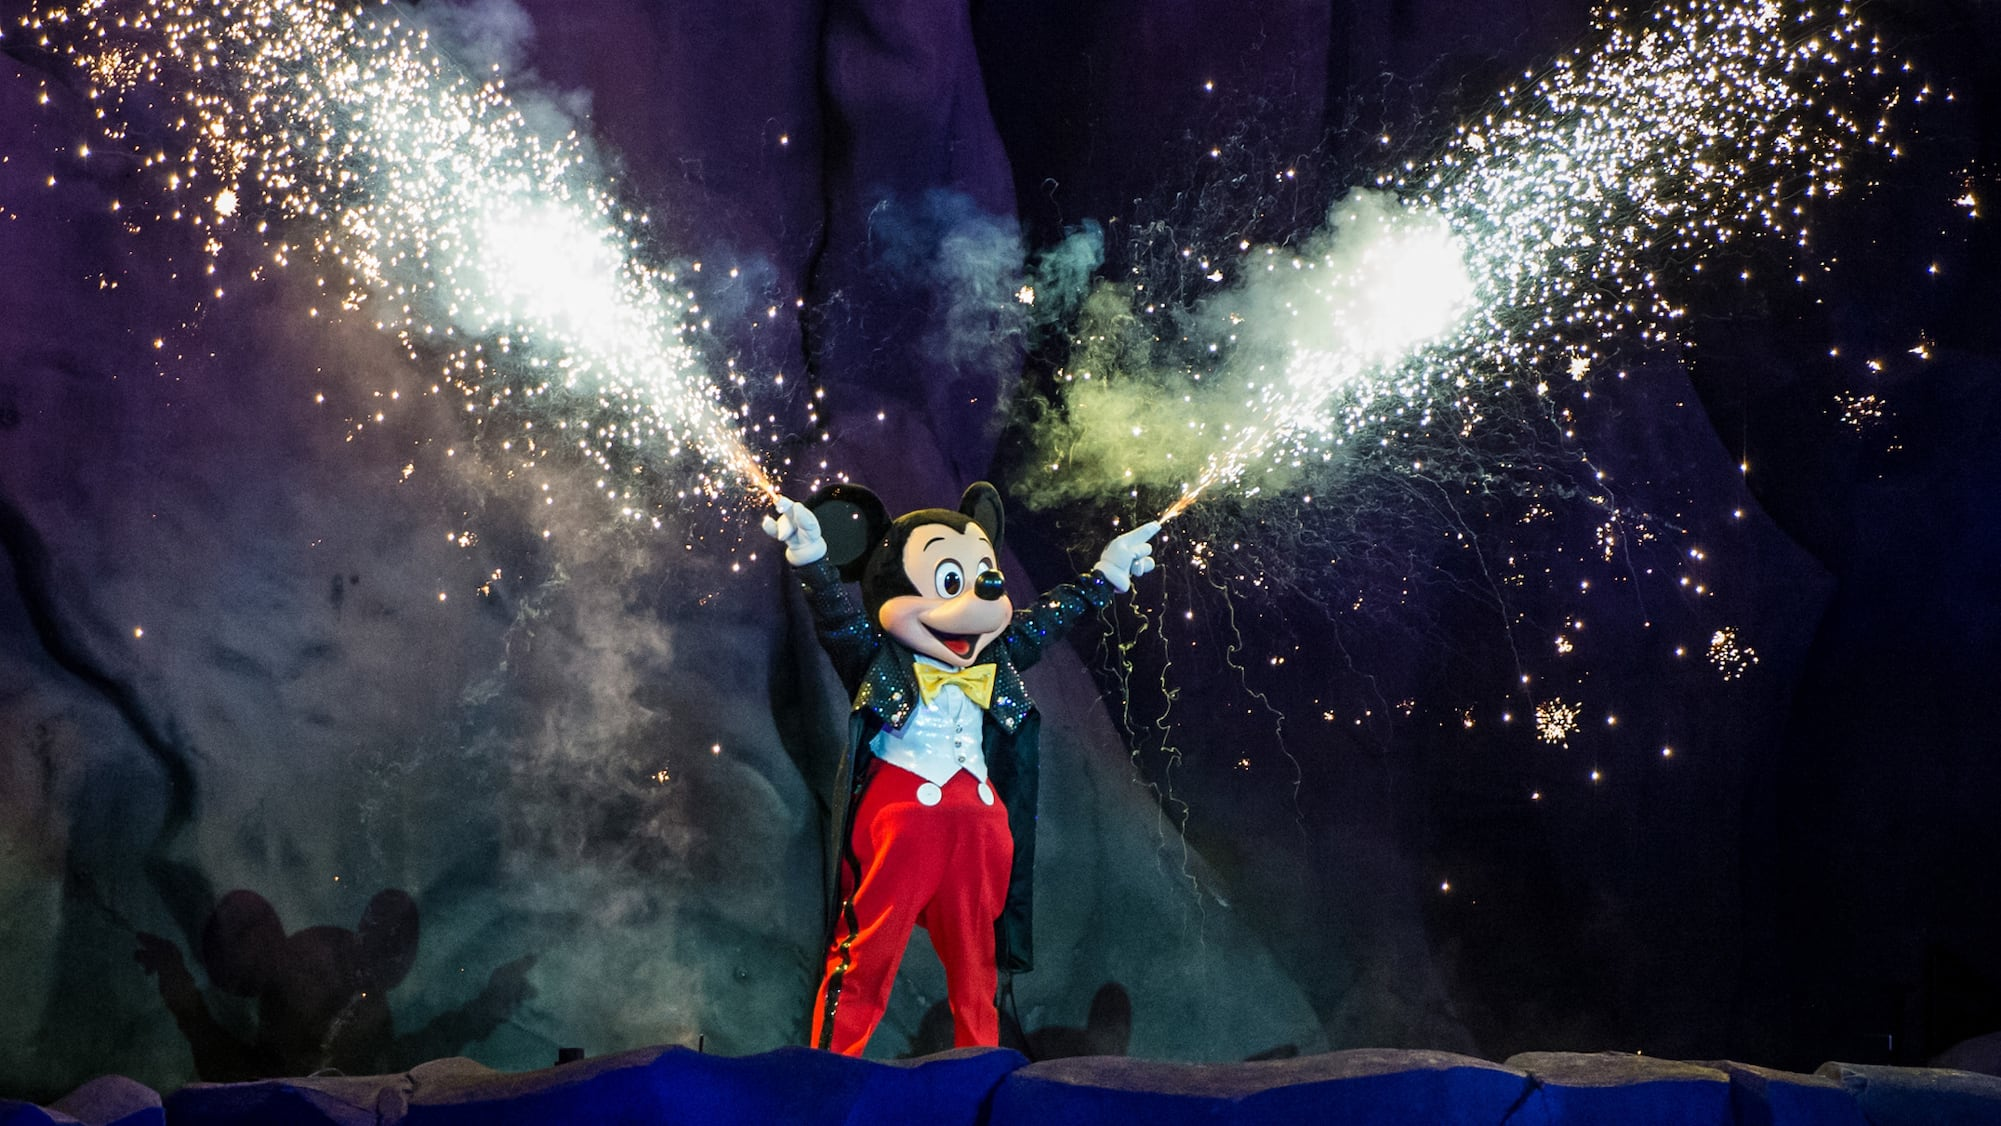 6e02373e2 Mickey extends his arms and smiles while thousands of fiery sparkles fly  forth from his fingertips